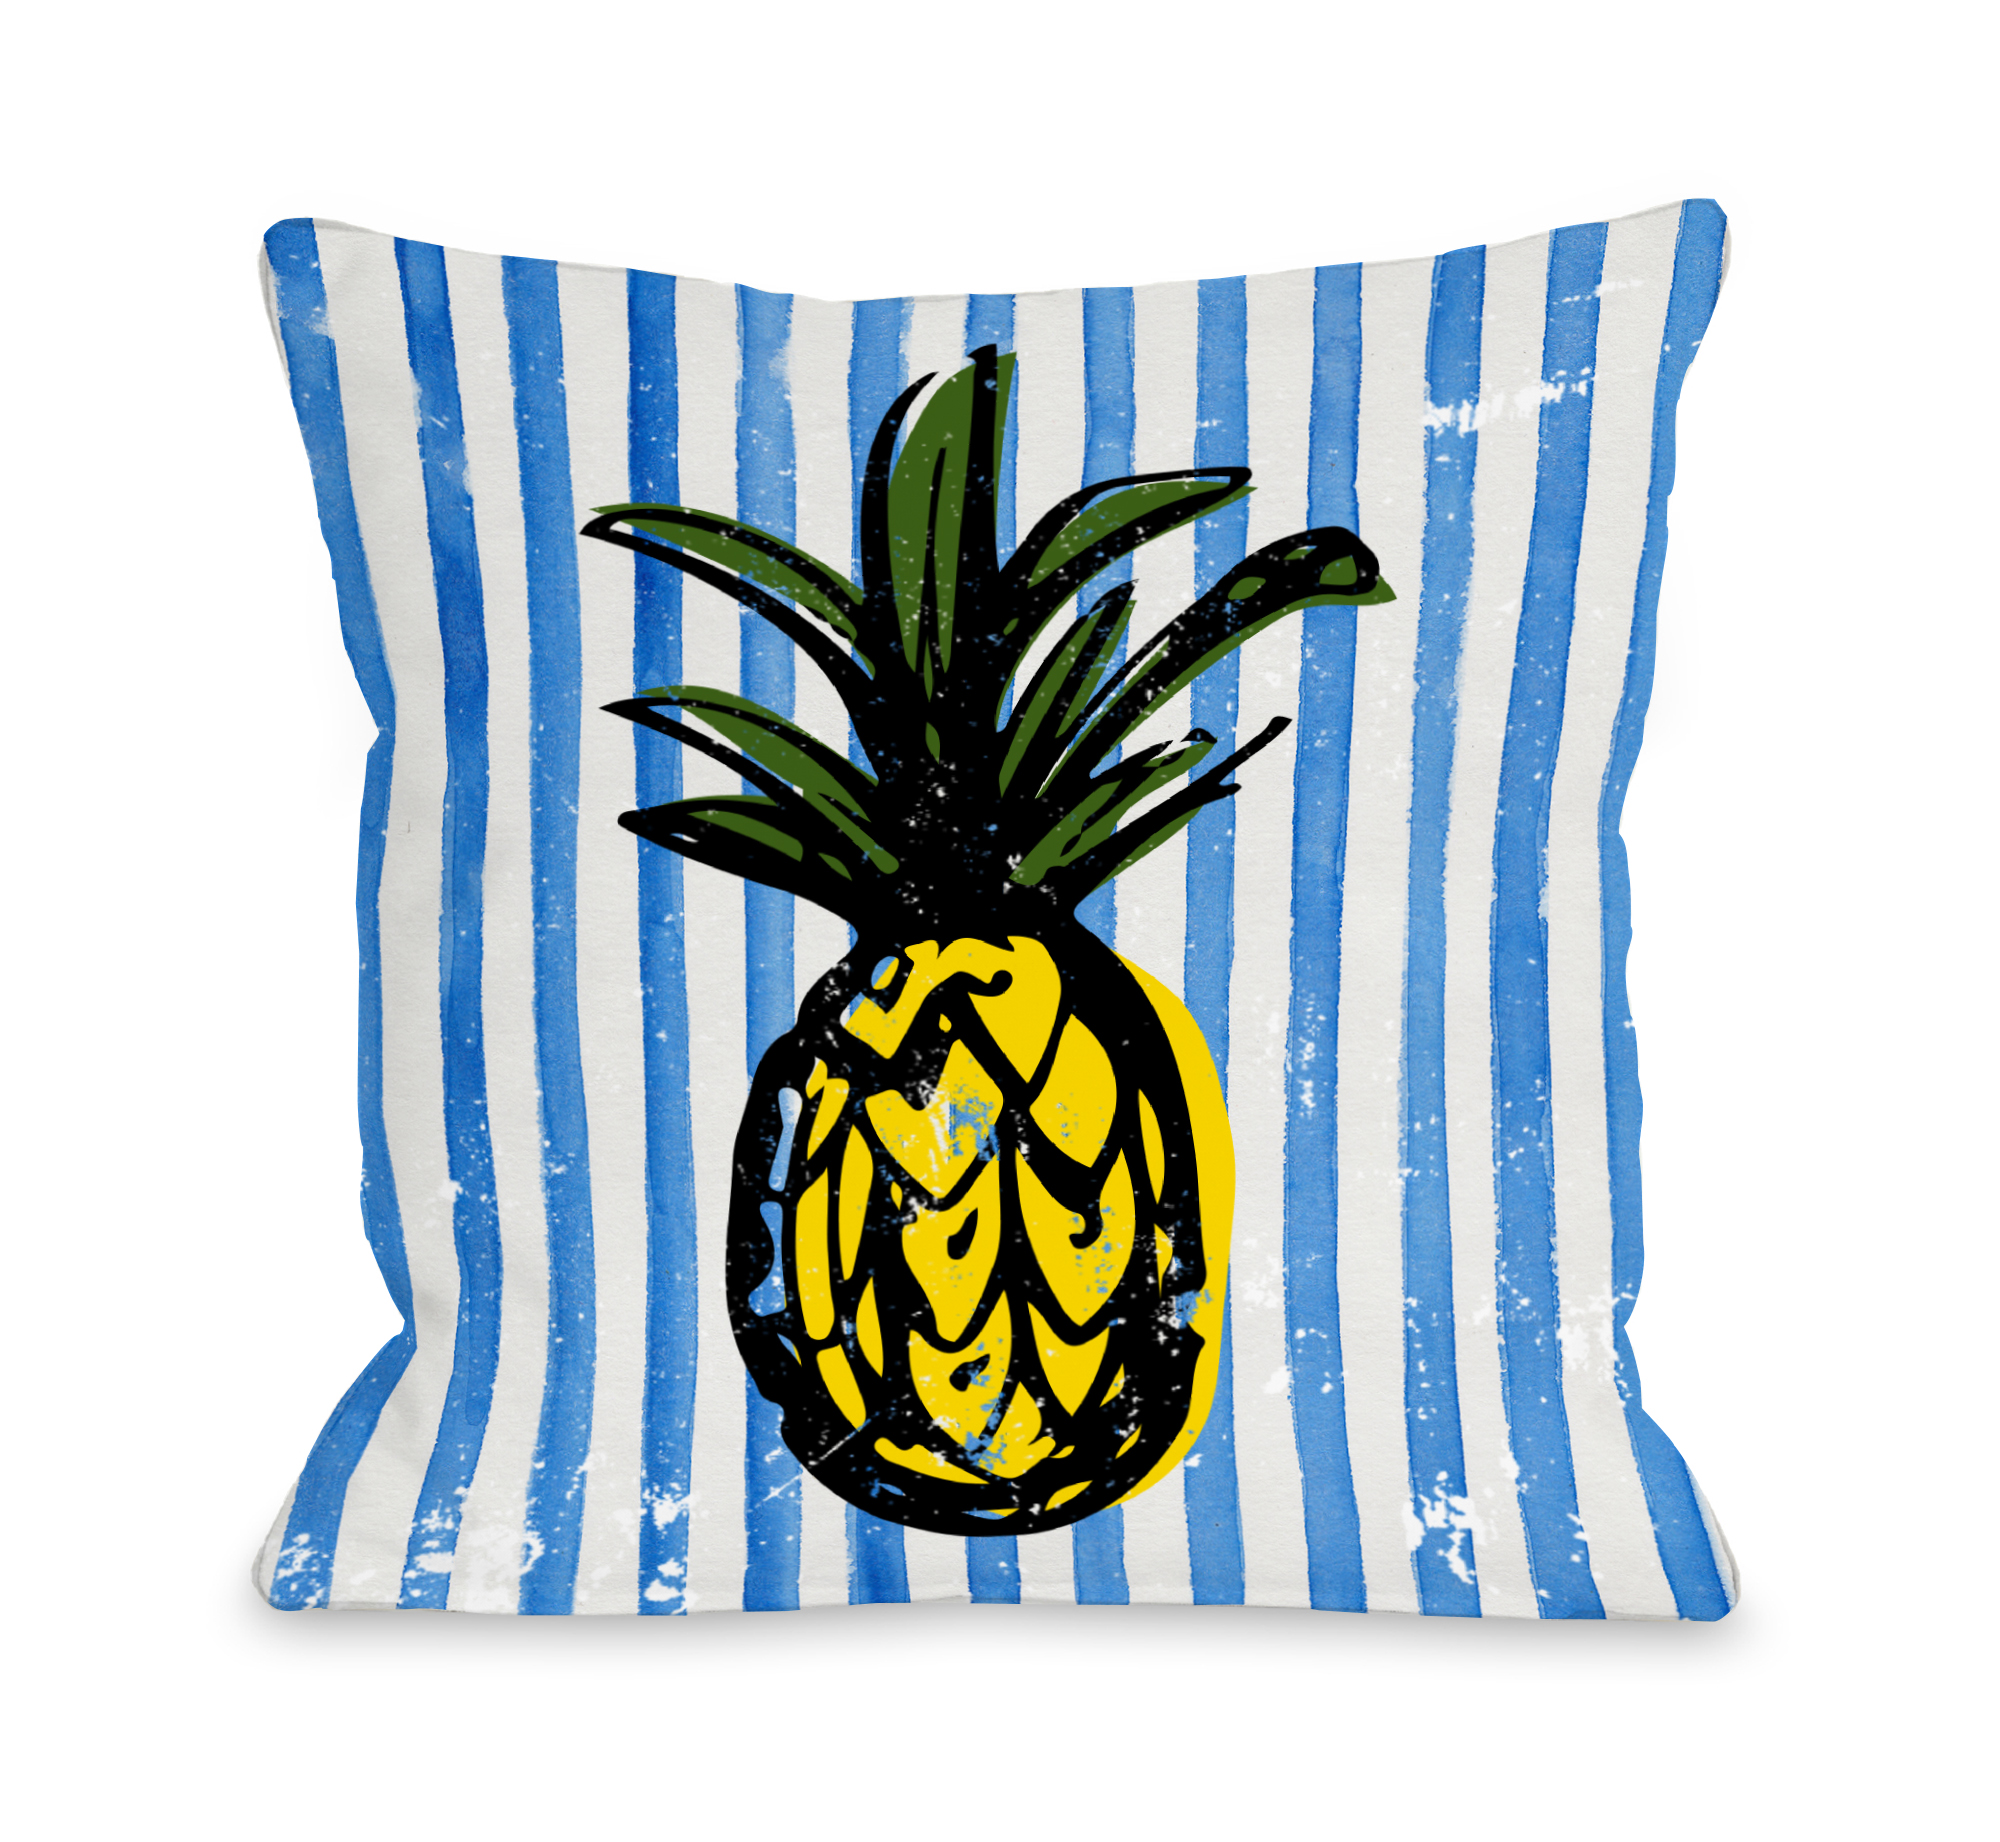 Fineapple - Blue Multi 16x16 Pillow by OBC